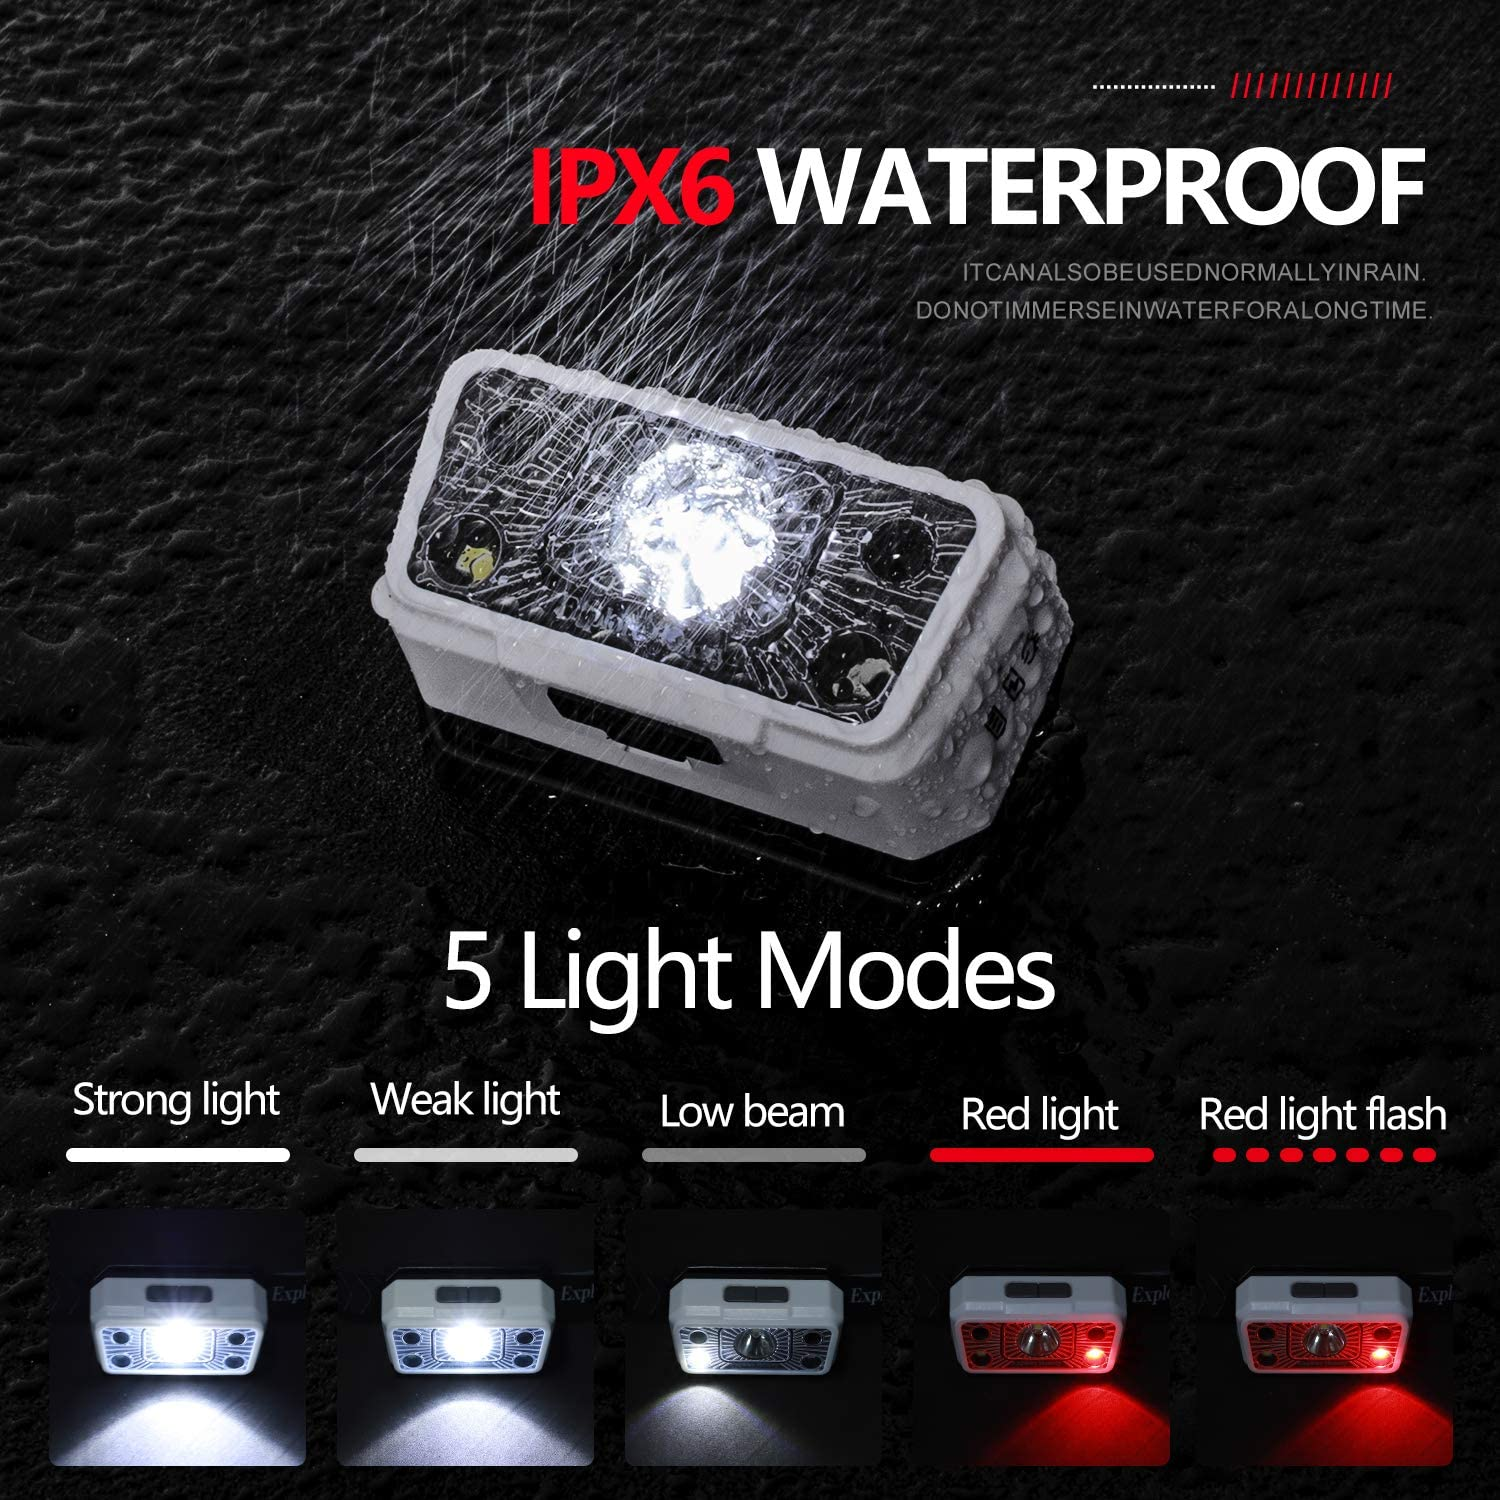 White Lightweight and Motion Sensor Headlight for Running Camping,Outdoors-Bright Head Lamp with Red Beam for Adults and Kids NAHT Light USB Rechargeable LED Headlamp Flashlight